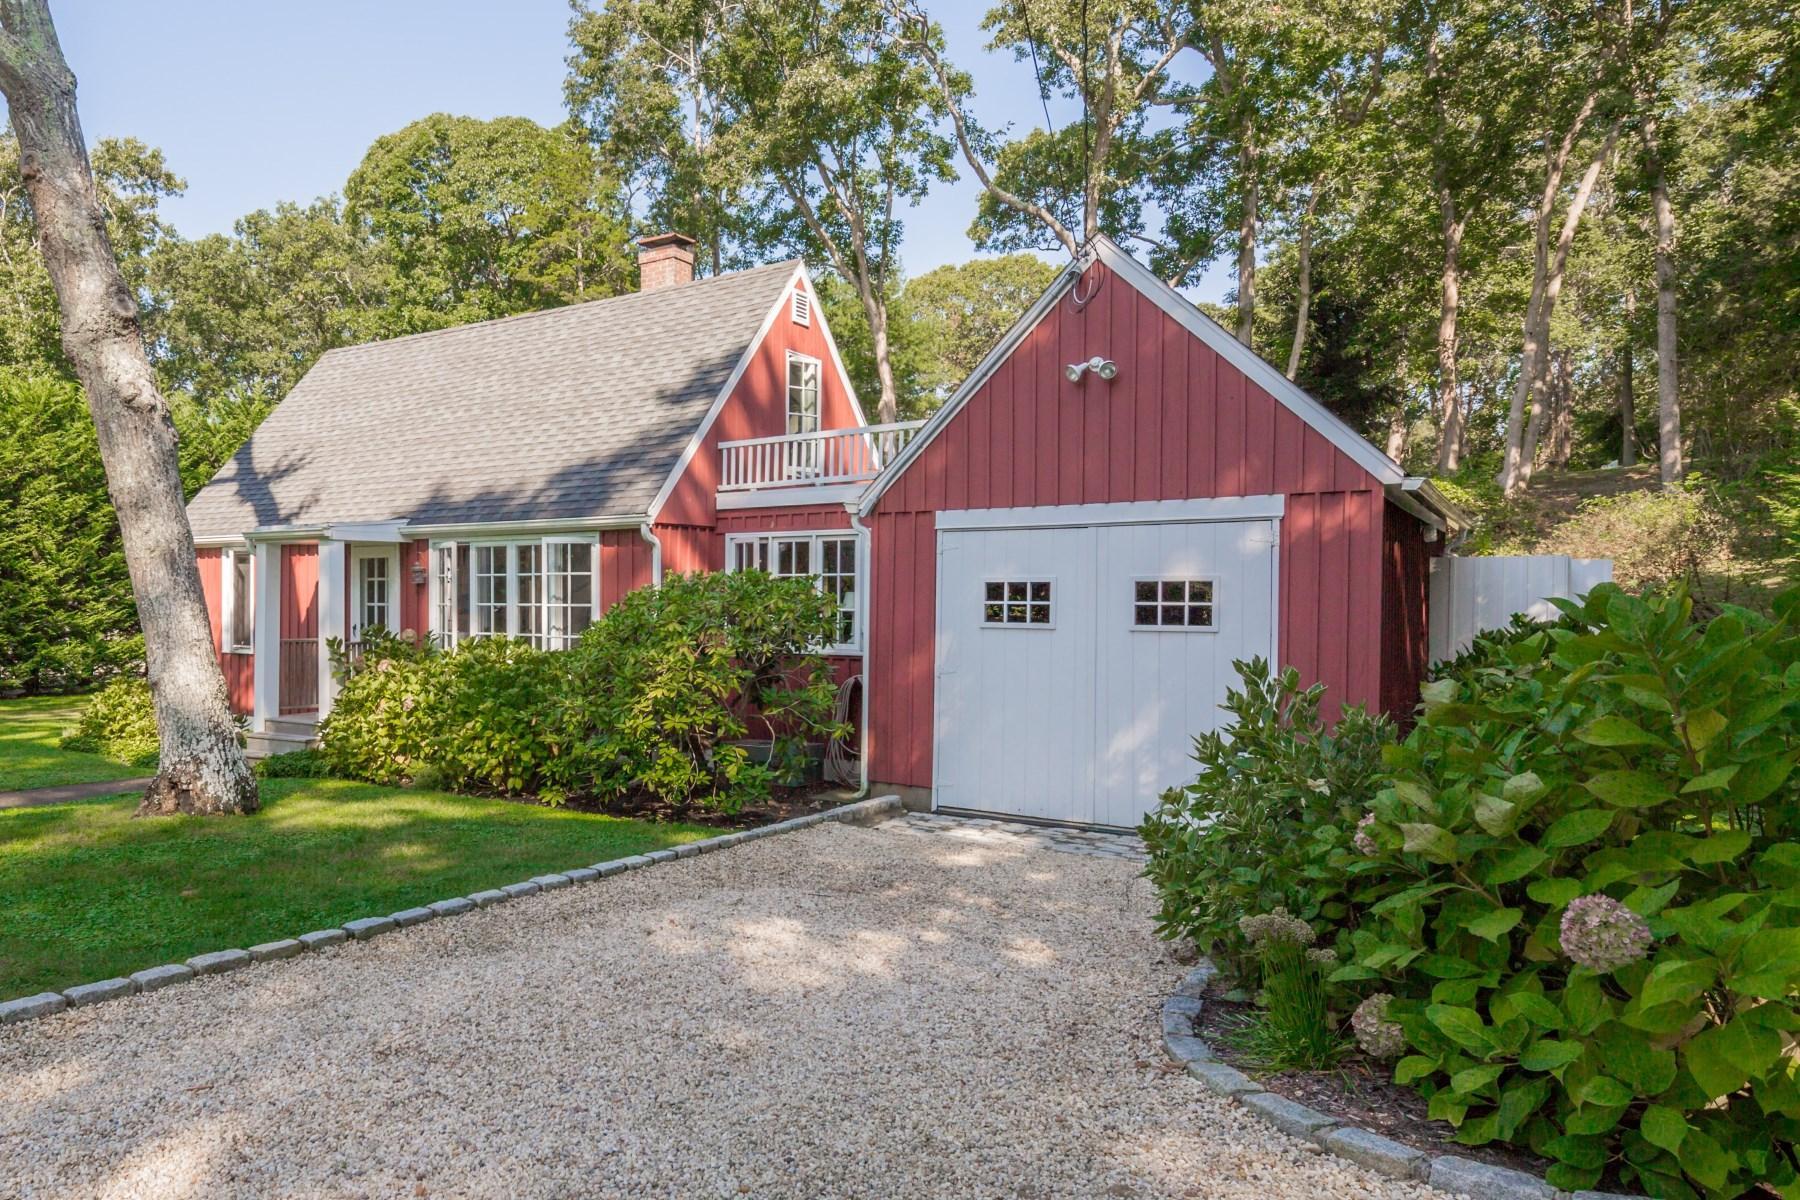 Single Family Home for Rent at Chic North Sea Cottage - Southampton 25 Cove Road North Southampton, New York 11968 United States